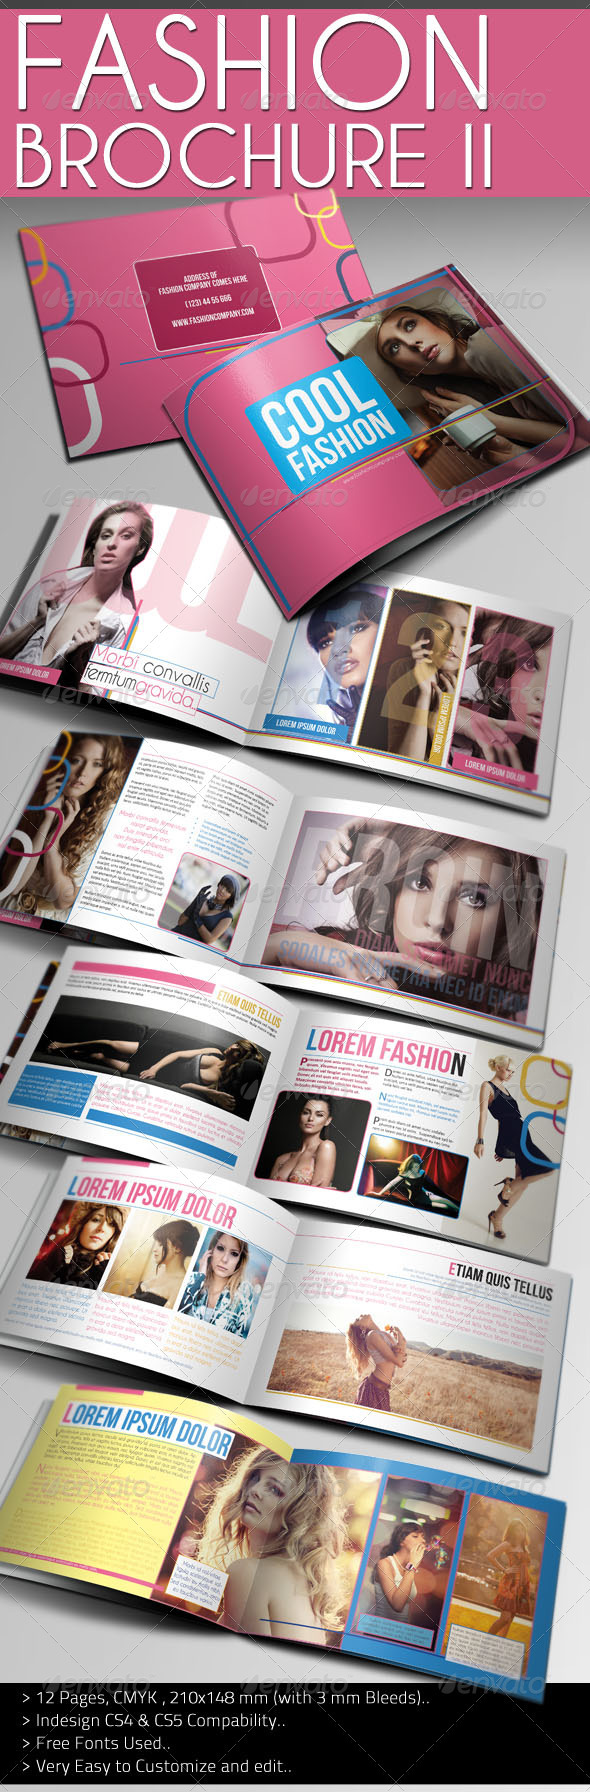 Cool Fashion Brochure - Brochures Print Templates